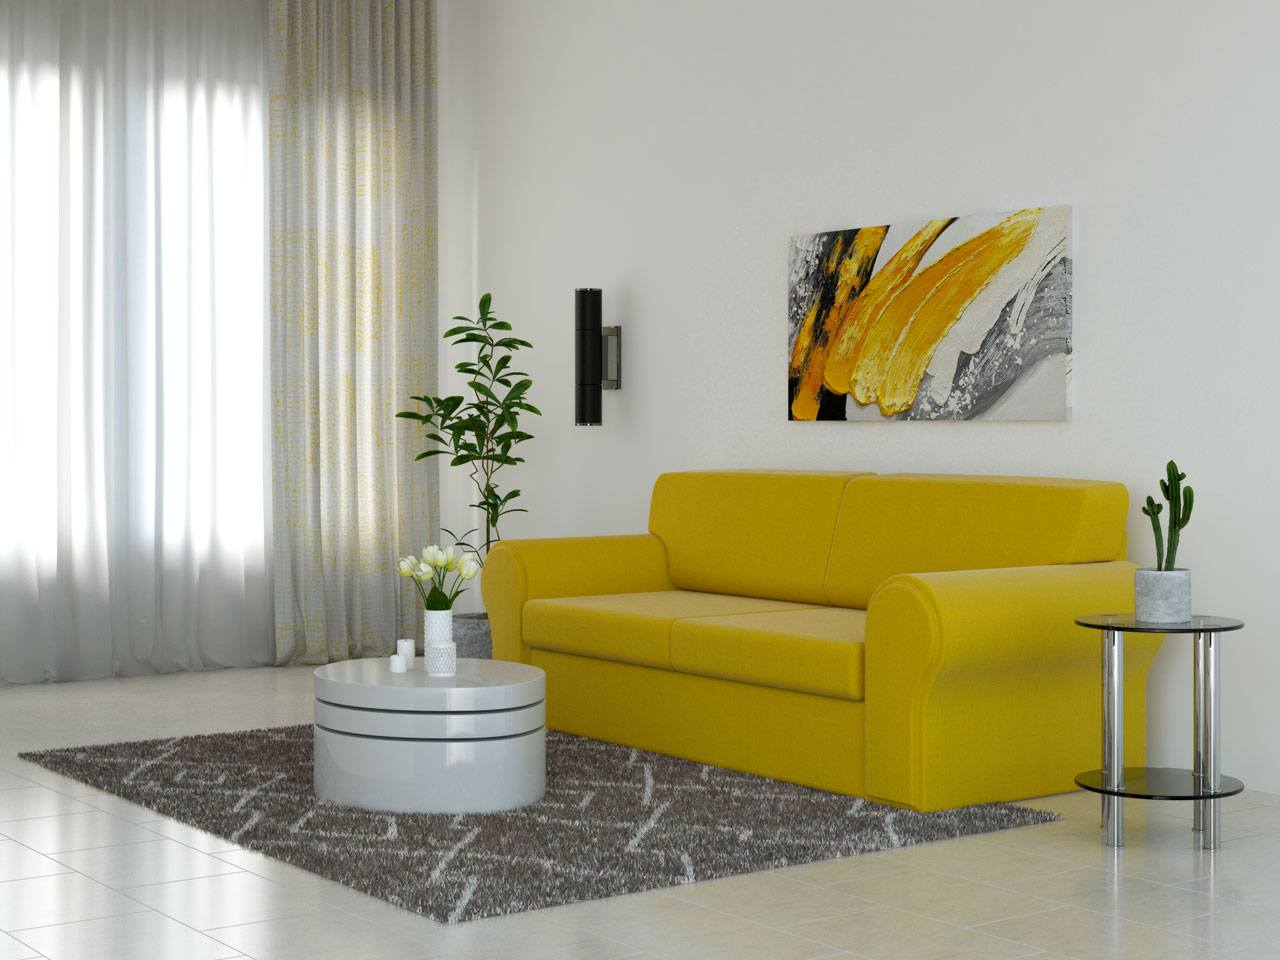 Brown rug with yellow couch